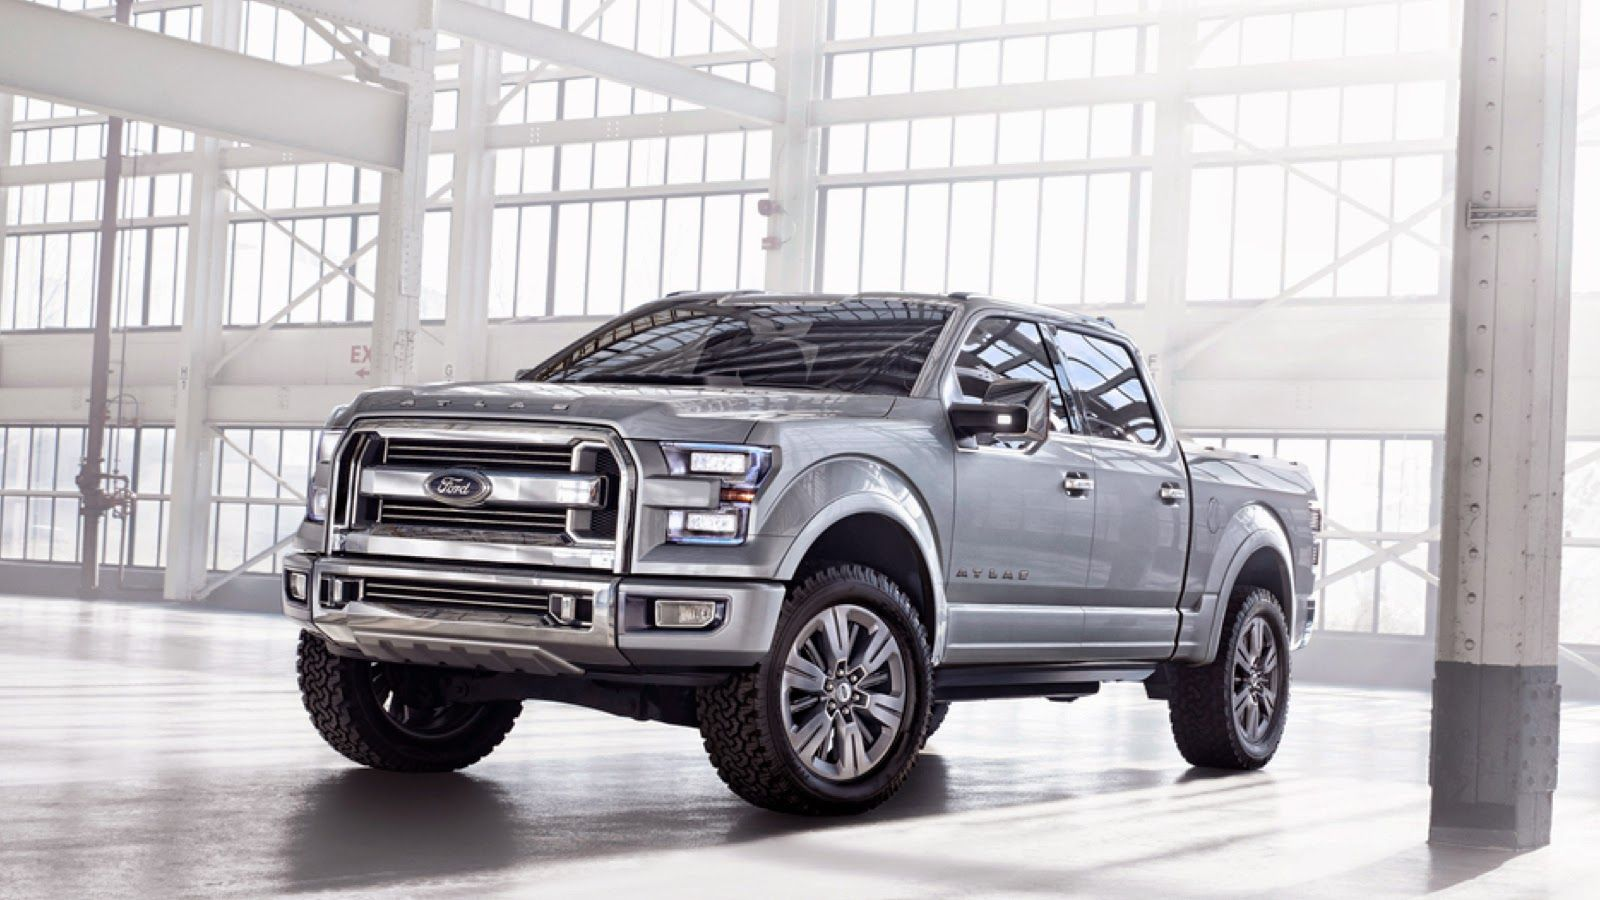 2015 Ford F150 Ford Mustang Mbah Ford bronco, Ford